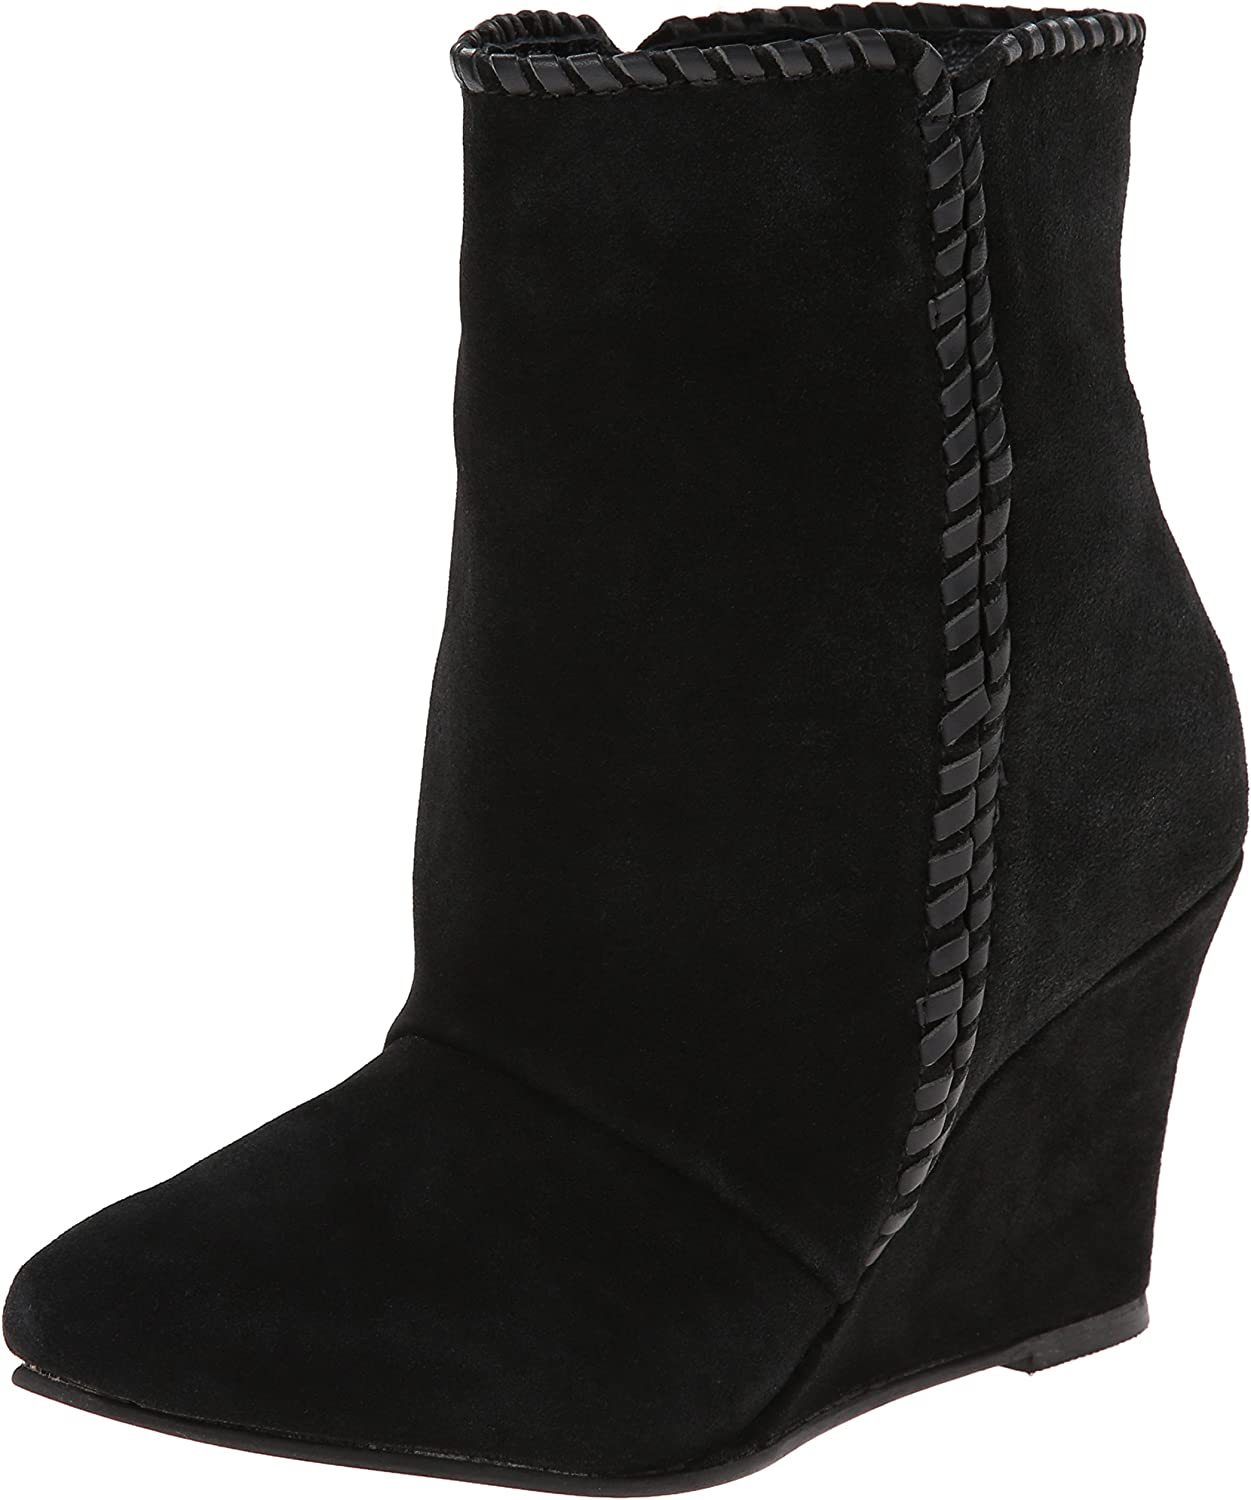 Charles by Charles David Women's Naya Boot Black